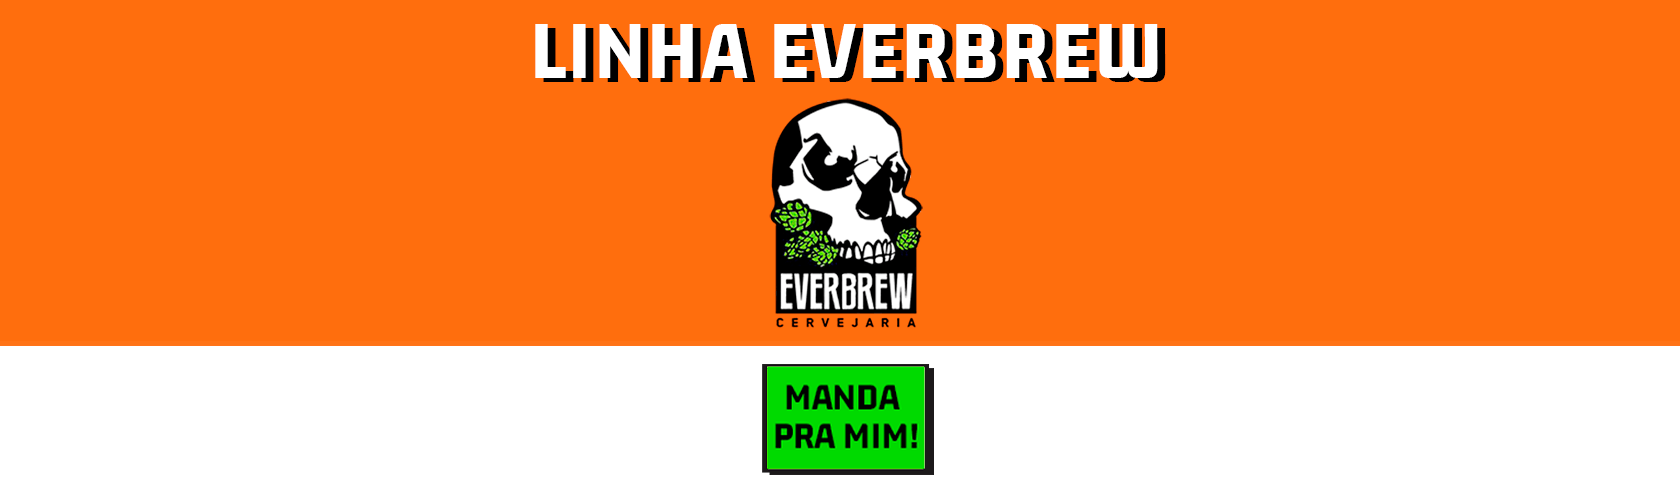 data/flash-everbrew-29012021.png